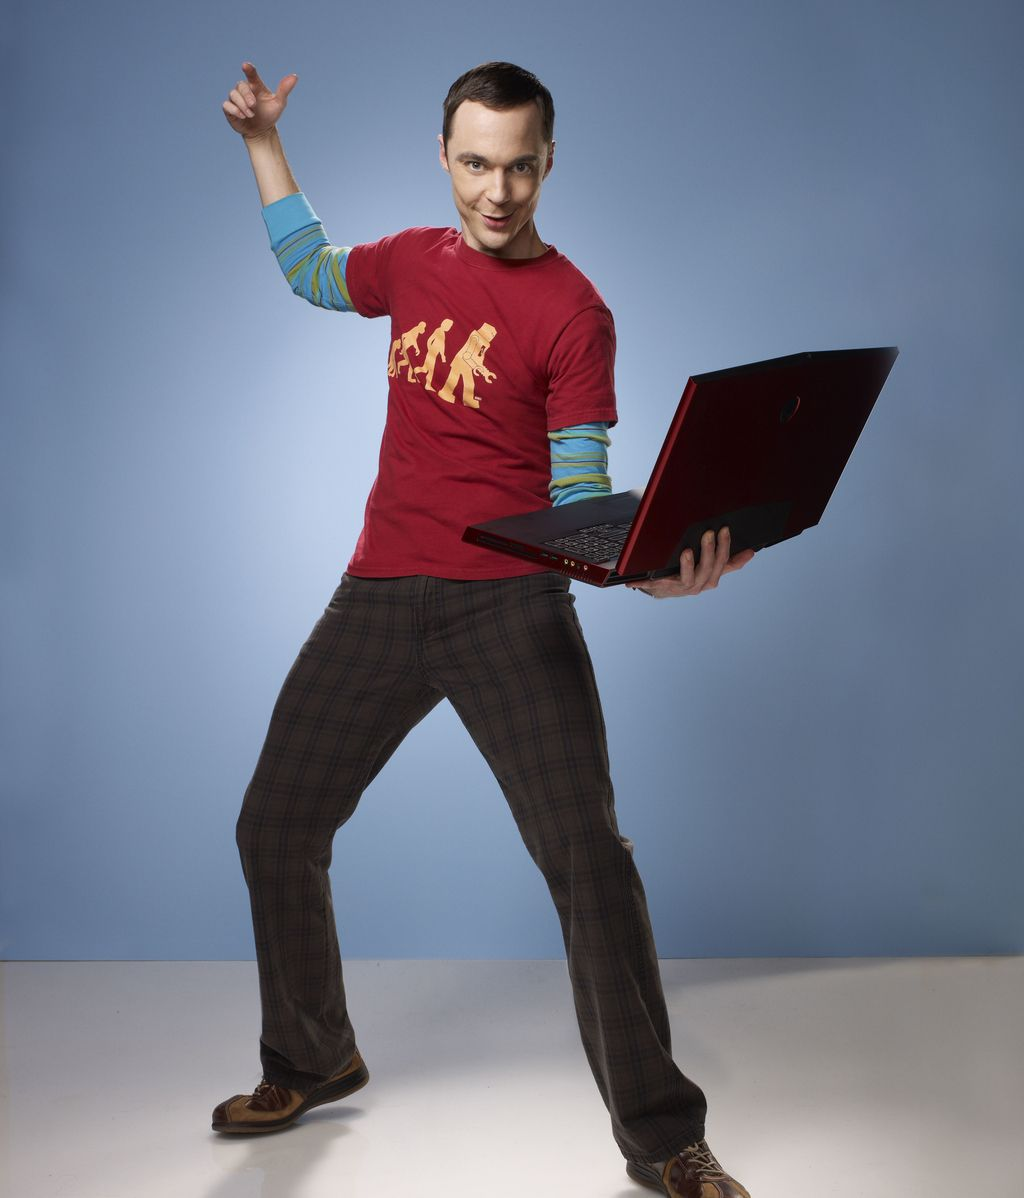 Jim Parsons as Sheldon Cooper